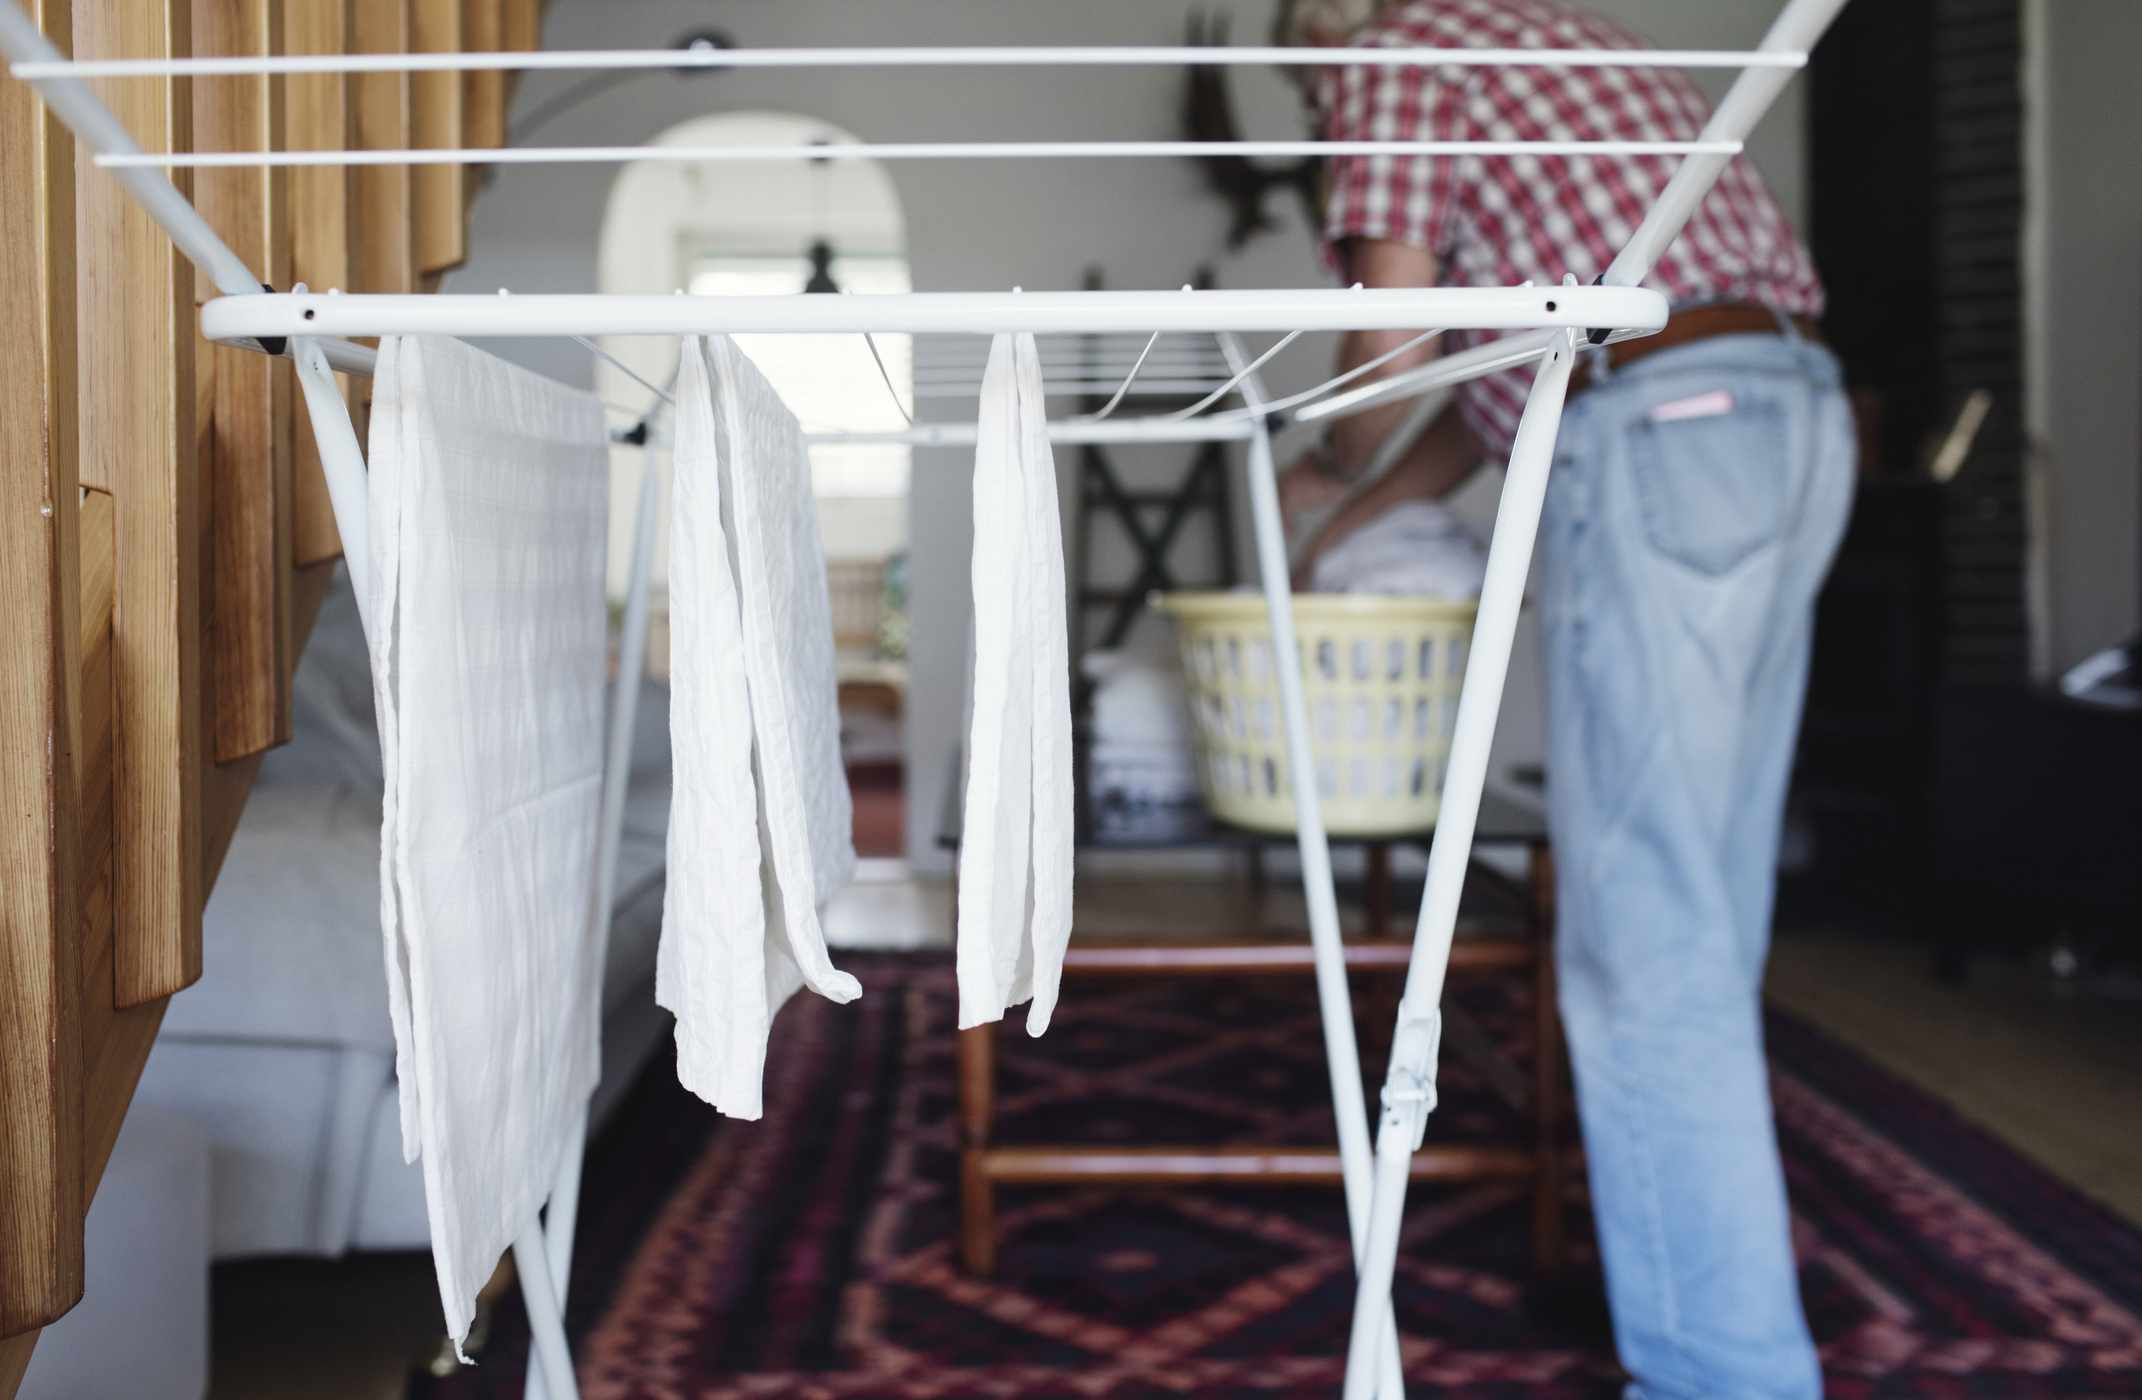 A person hanging white clothes on an indoor clothesline.